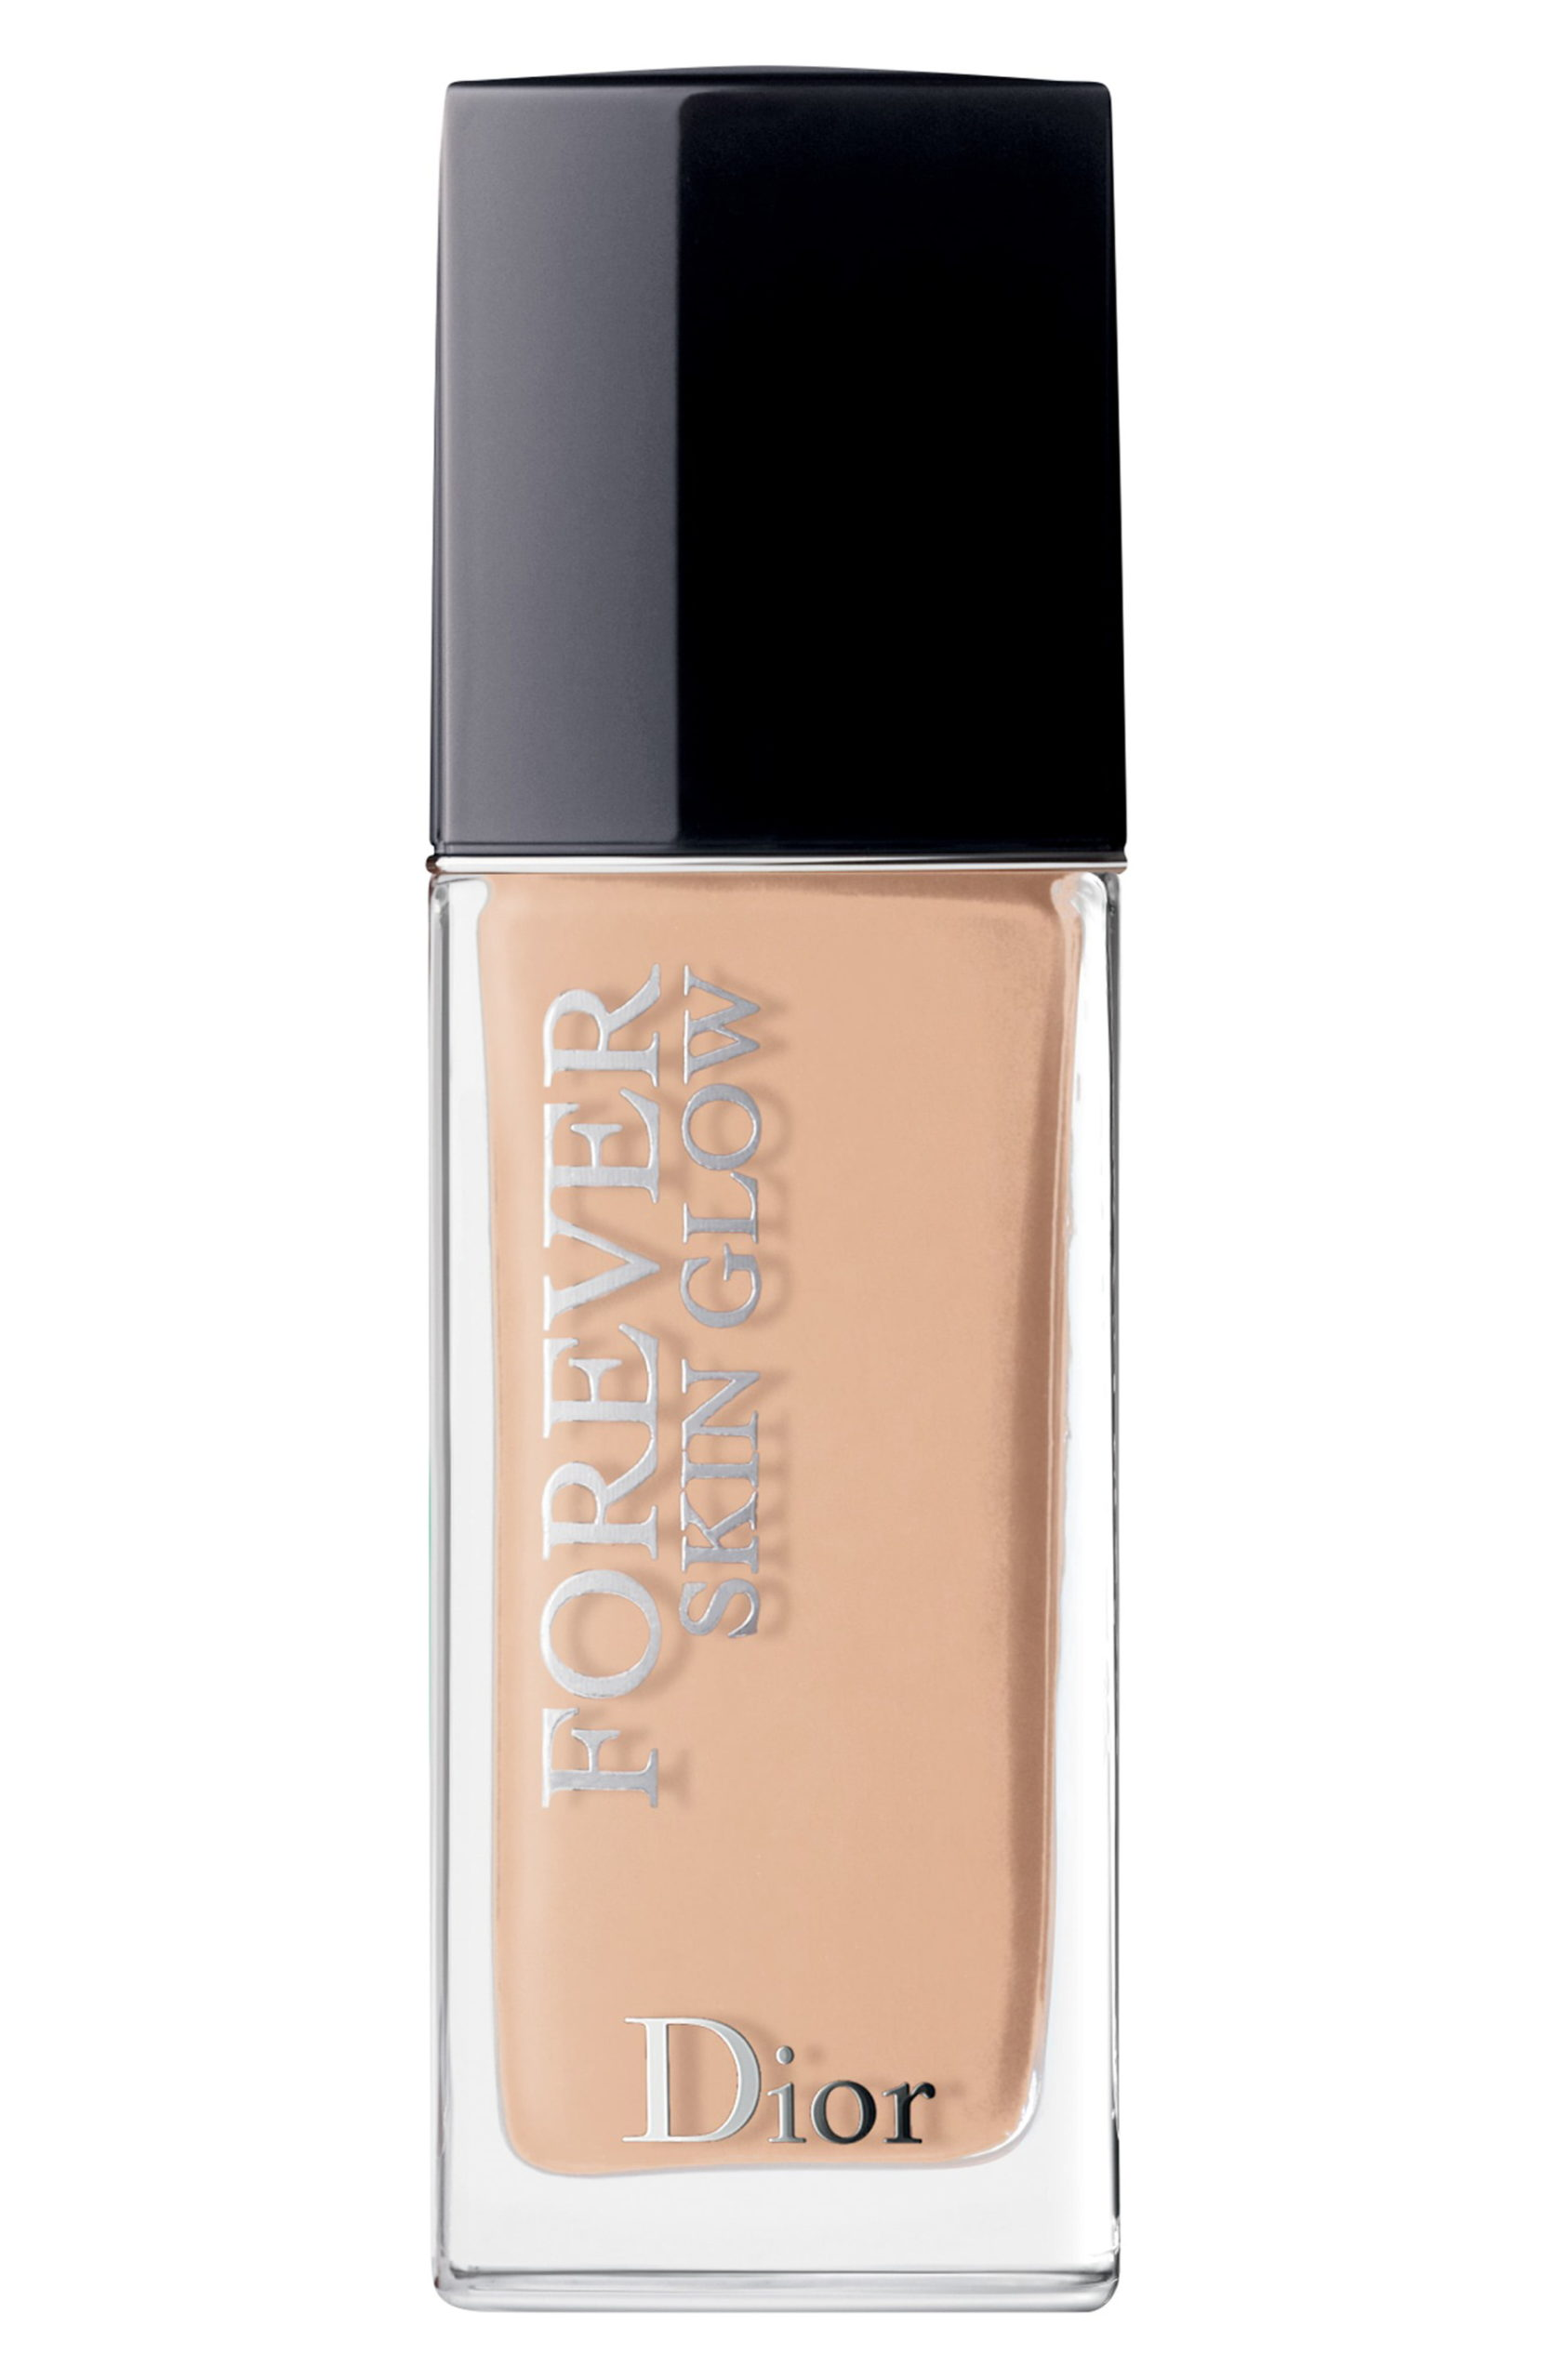 Dior Forever Skin Glow - 2 Cool Rosy